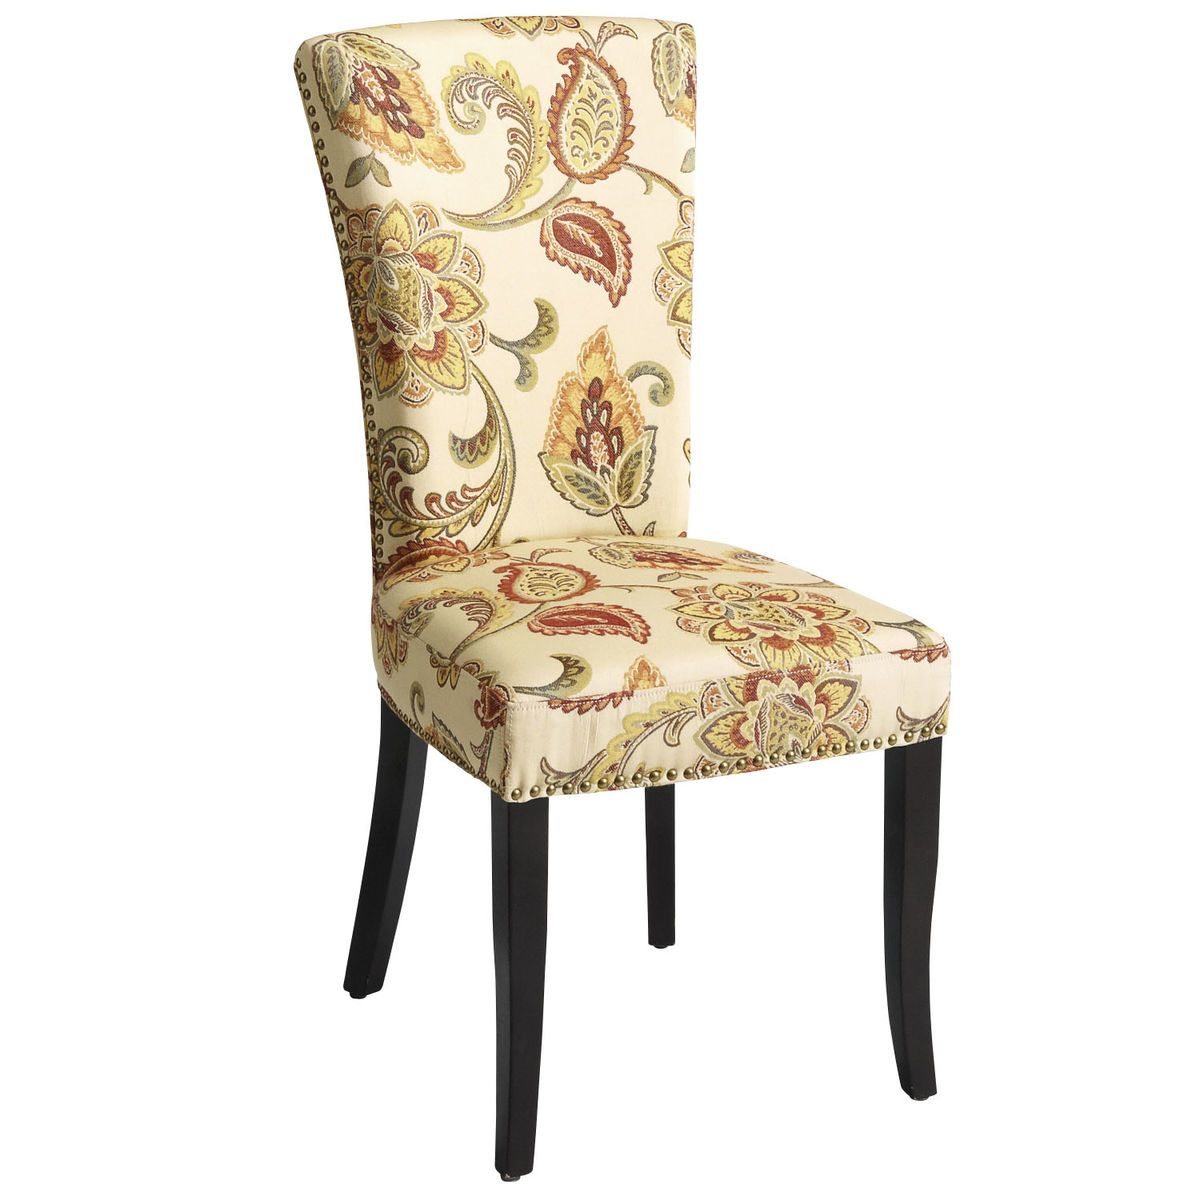 Adelaide Ochre Floral Dining Chair Pier 1 Imports Dining Chairs Dining Room Chairs Woven Dining Chairs